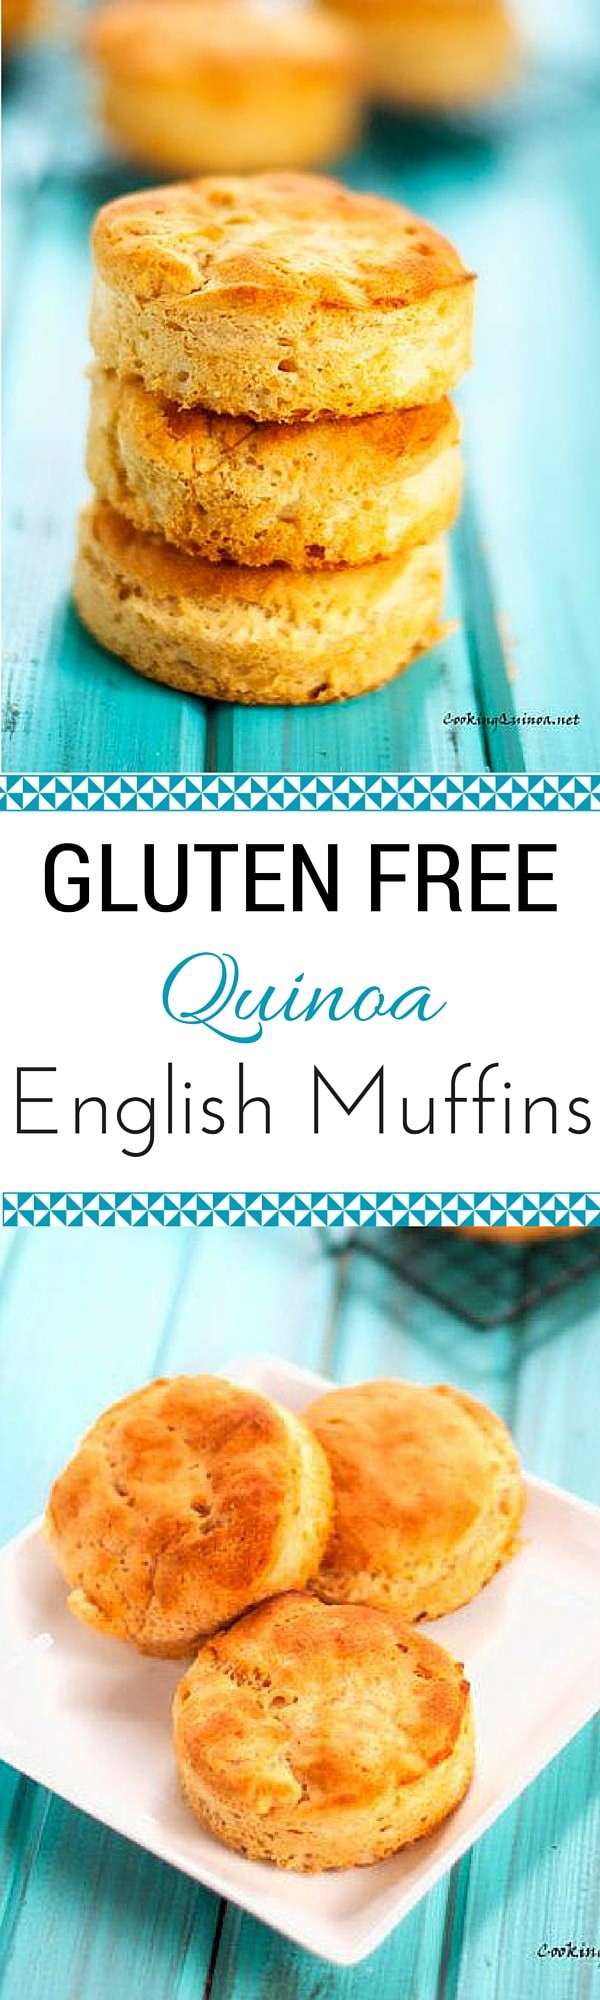 Muffins - It is hard to believe these English Muffins are gluten free ...